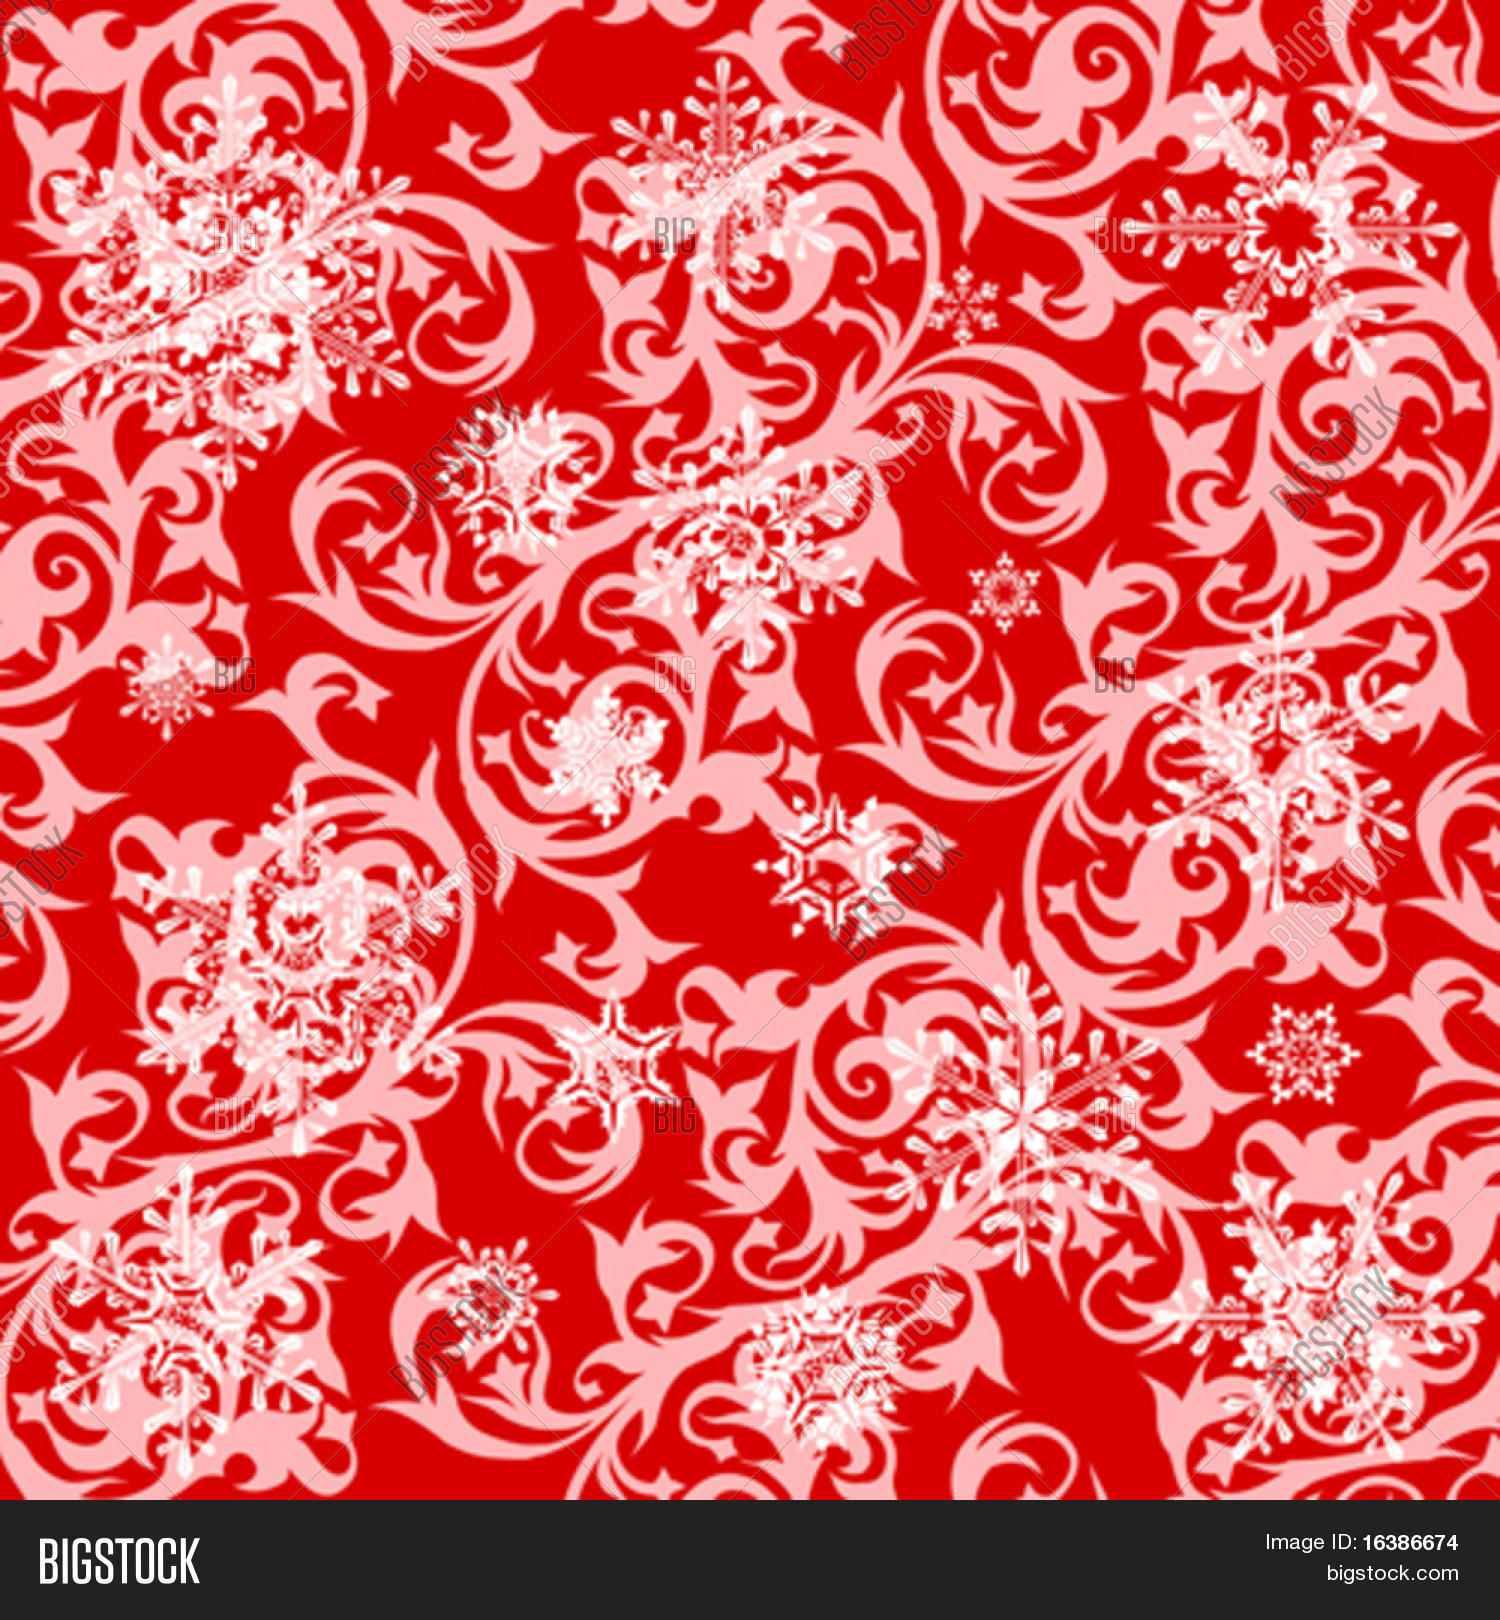 Red Floral Wallpaper Vector Photo Free Trial Bigstock